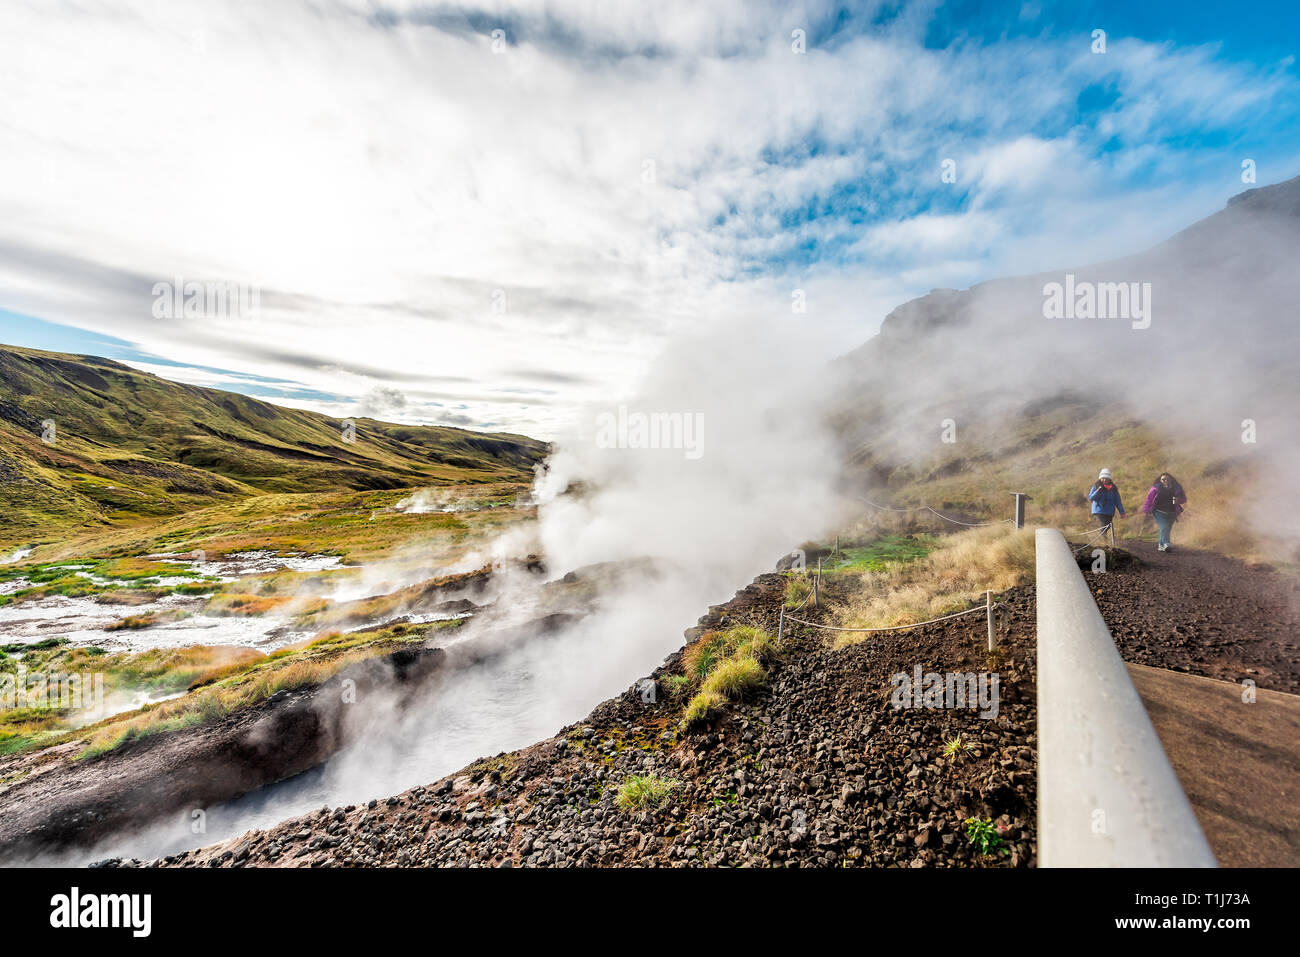 Hveragerdi, Iceland - September 18, 2018: Reykjadalur Hot Springs road trail with with people on trail and vapor steam fumarole vent during autumn day - Stock Image